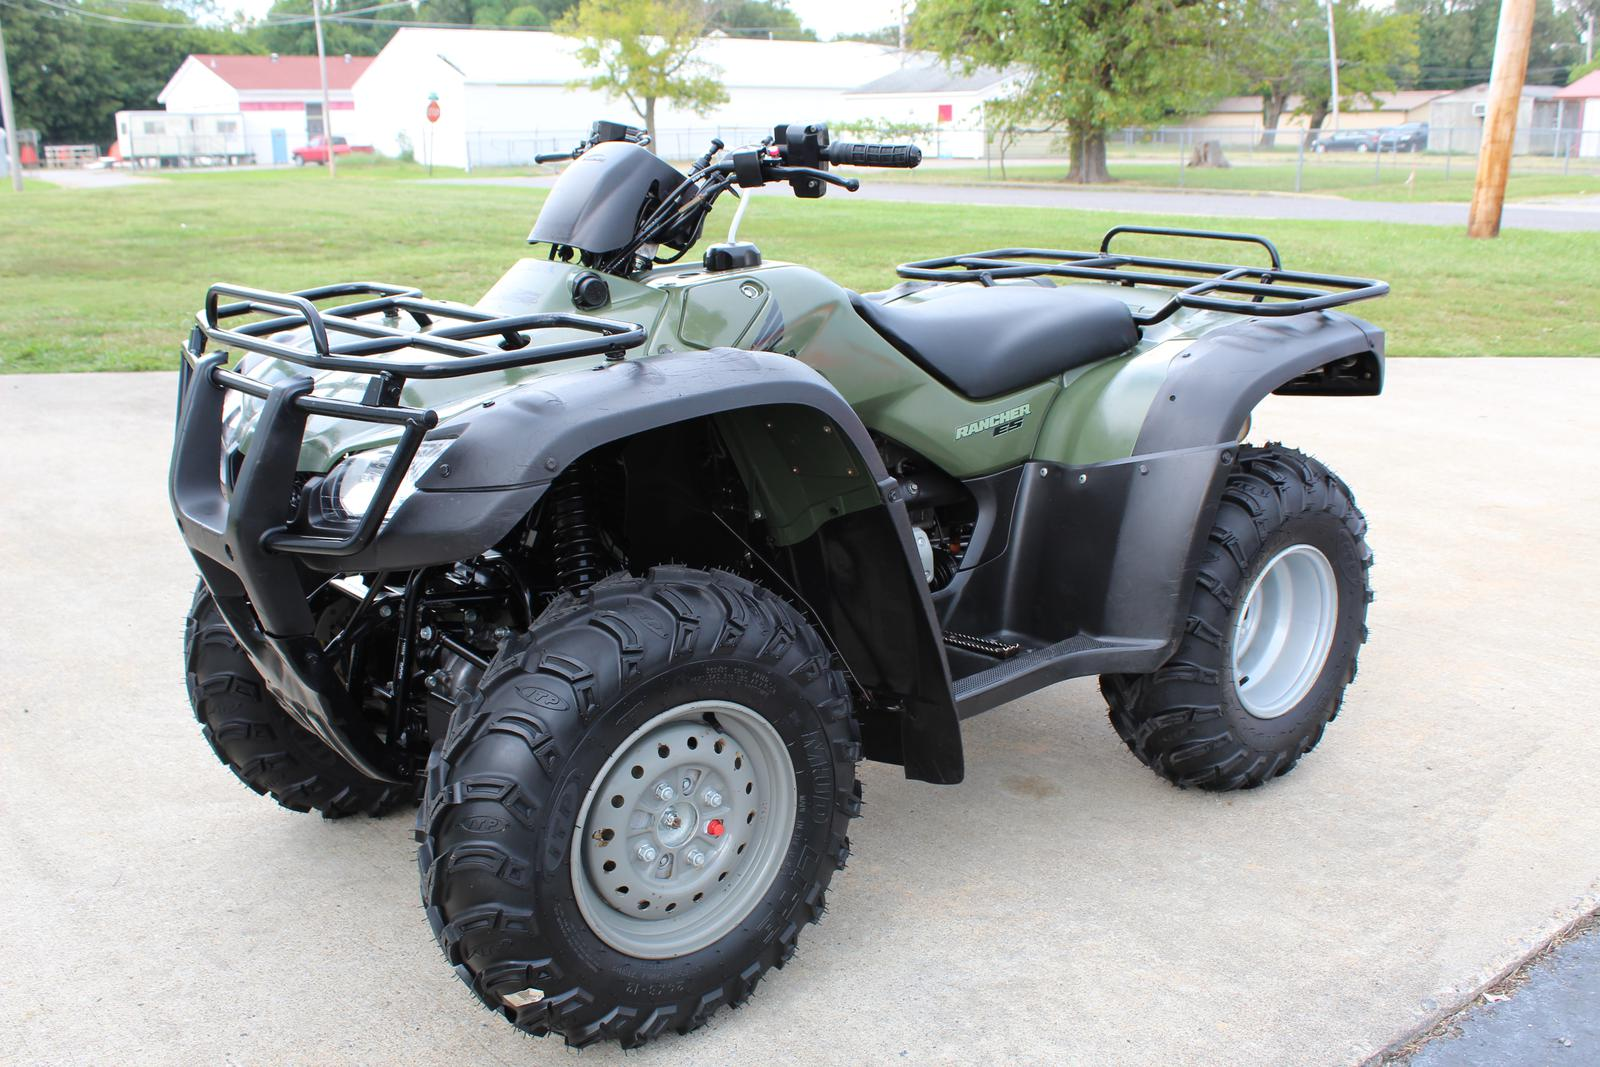 2005 Honda Rancher 350 4x4 Trx350fm For Sale In Paducah Ky Chase